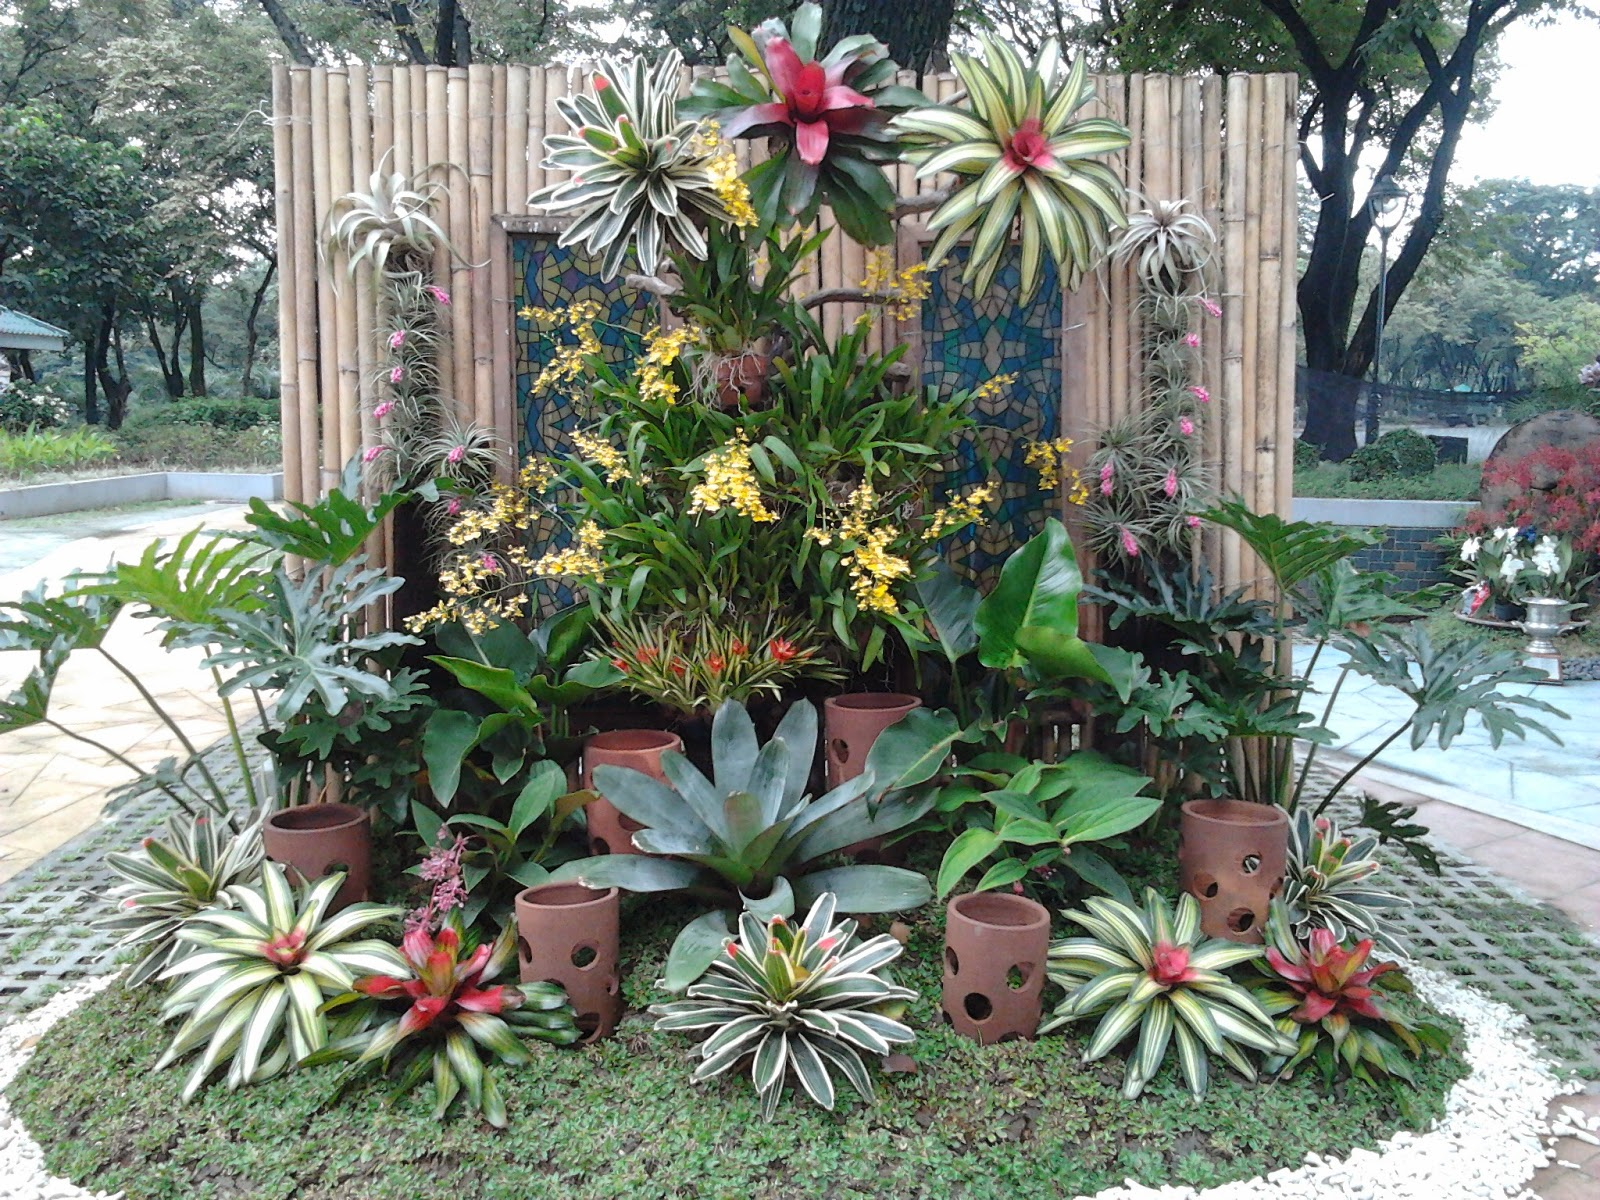 Philippine orchid events february 2015 for Pocket garden designs philippines